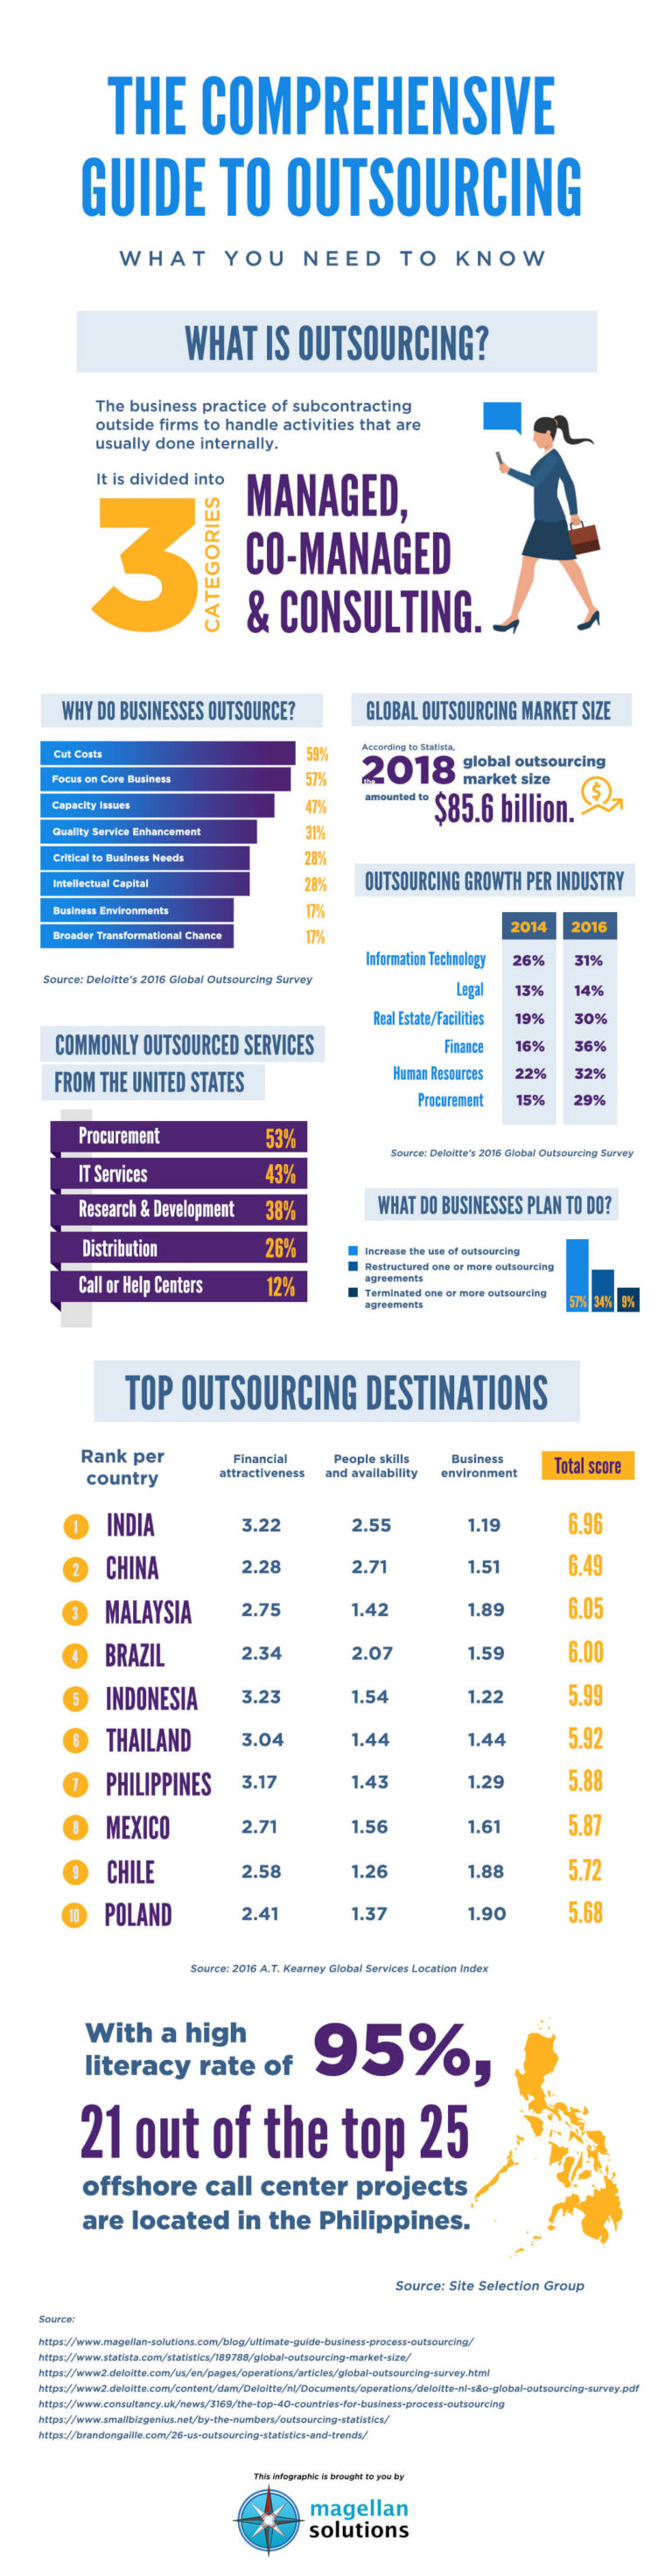 The-Comprehensive-Guide-To-Outsourcing-infographic-plaza